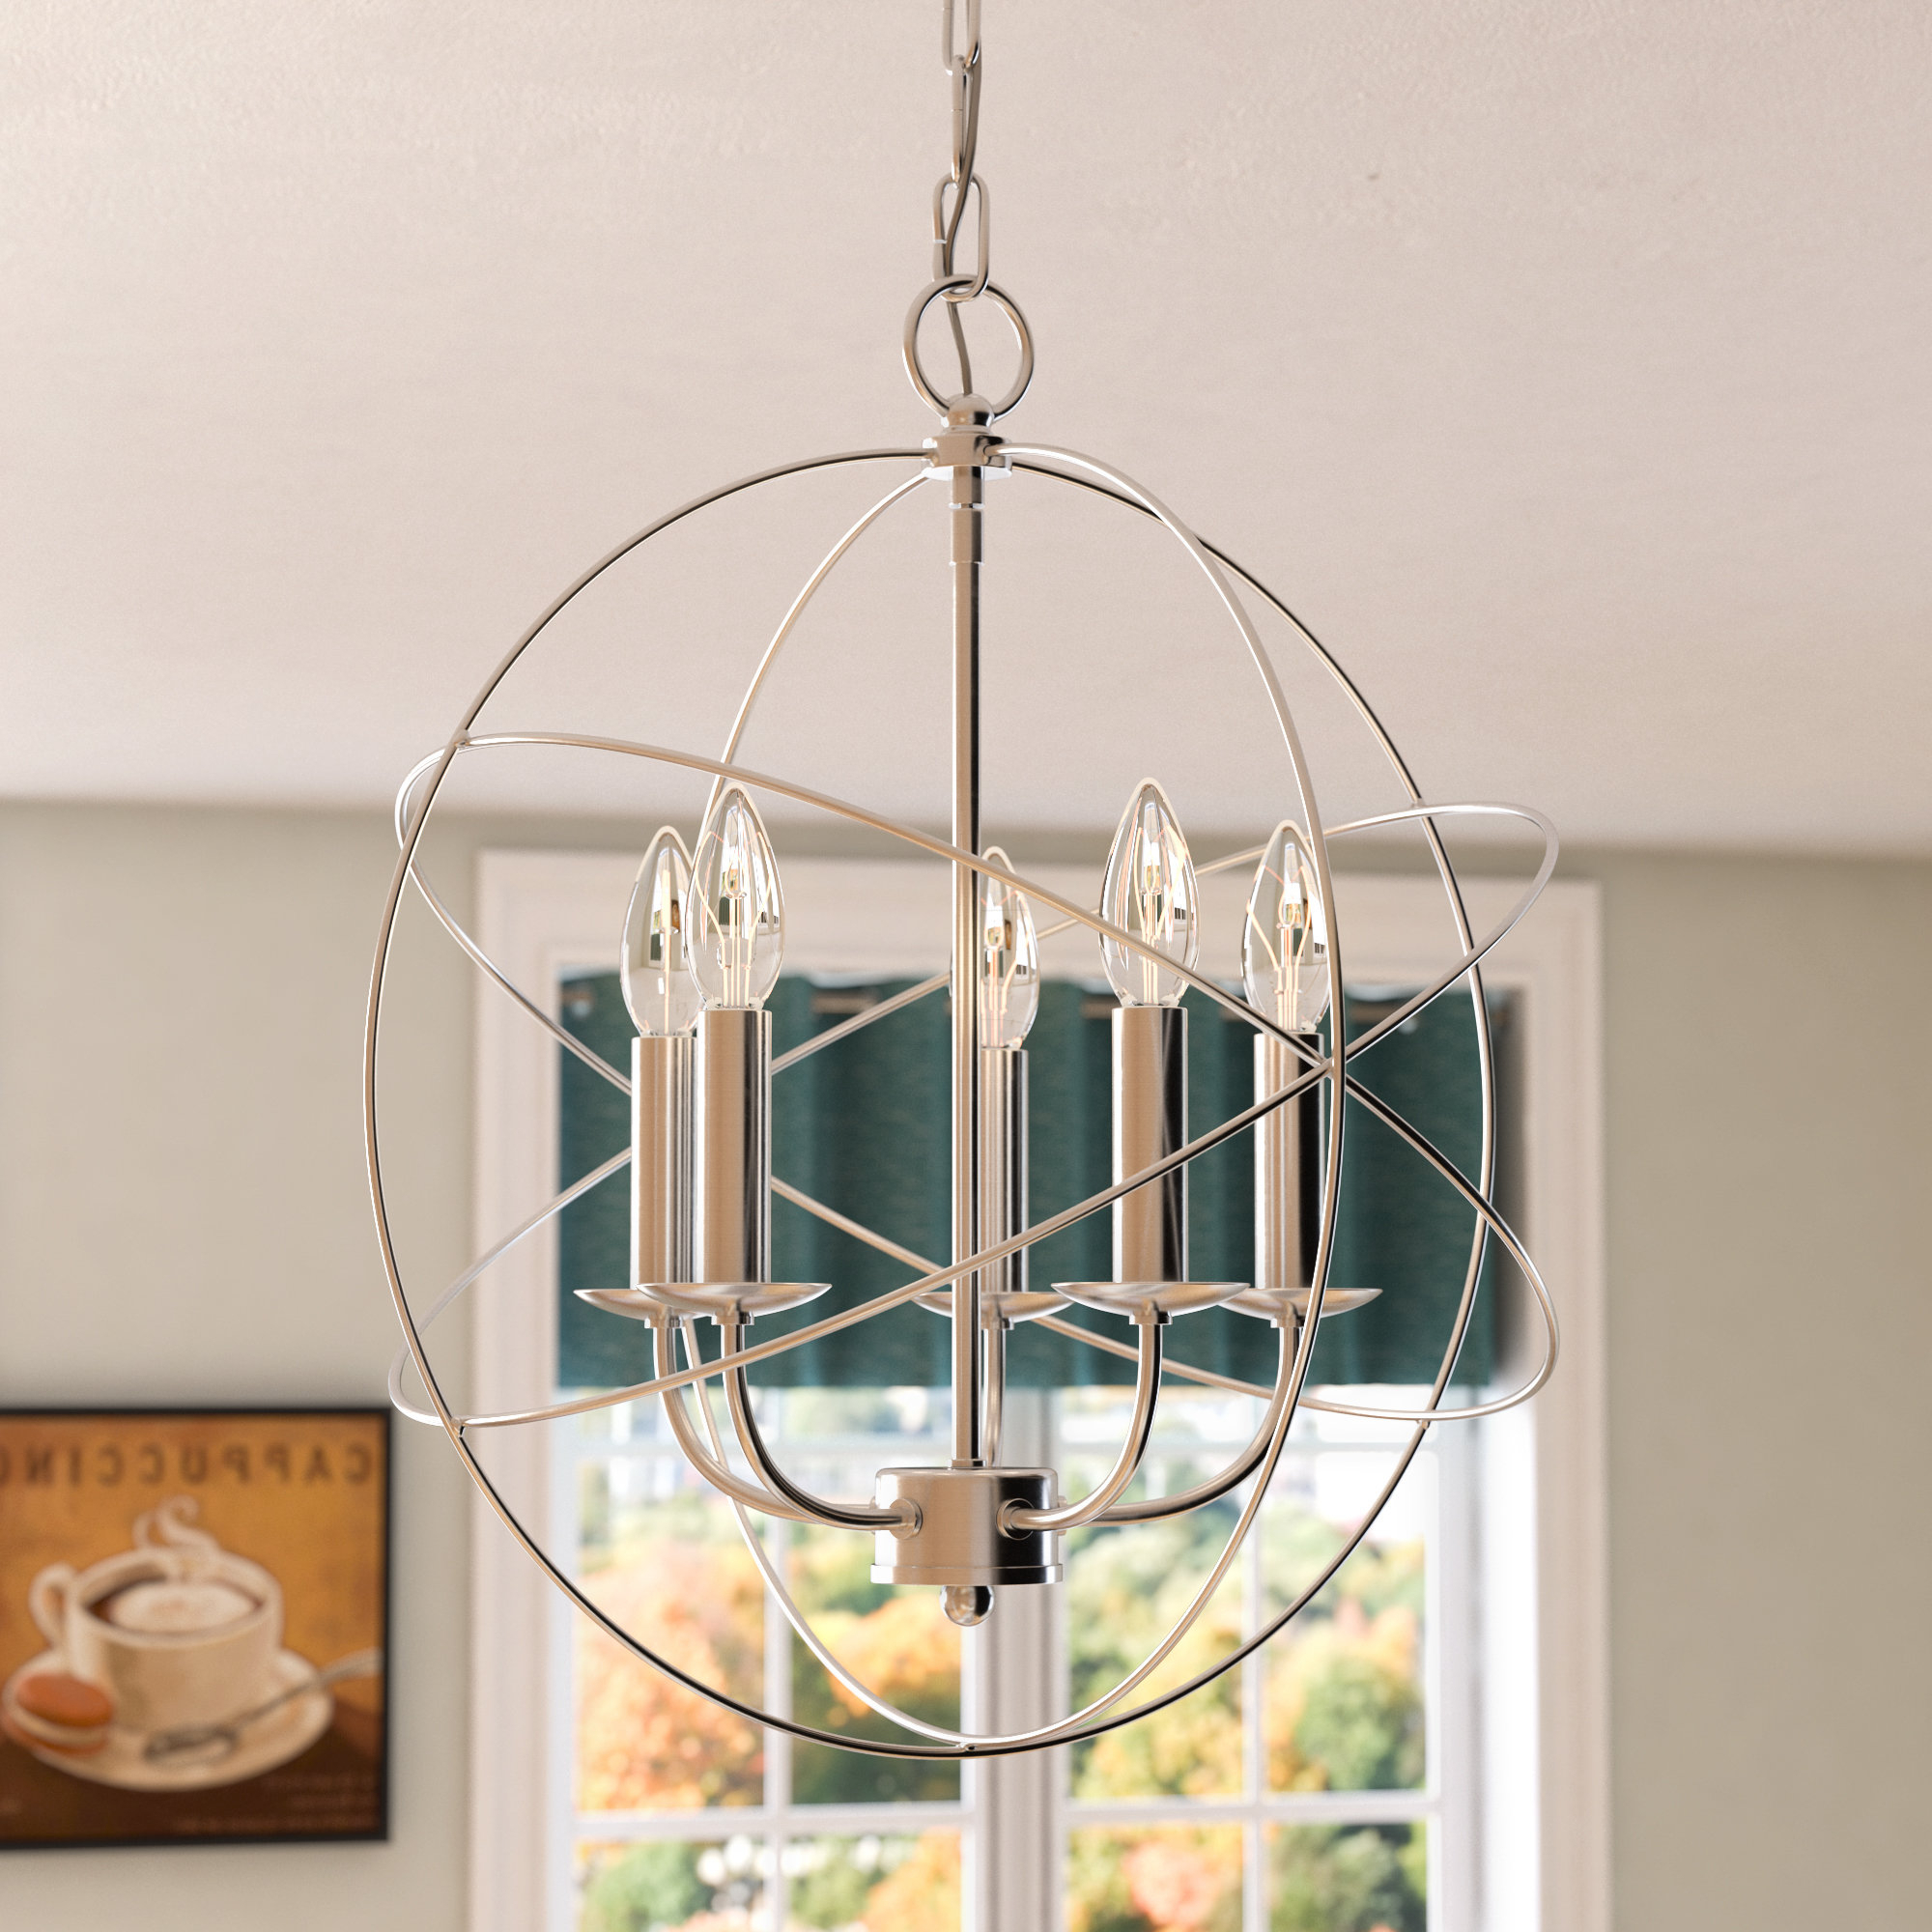 Famous Waldron 5 Light Globe Chandeliers Within Bordelon 5 Light Globe Chandelier (View 4 of 20)